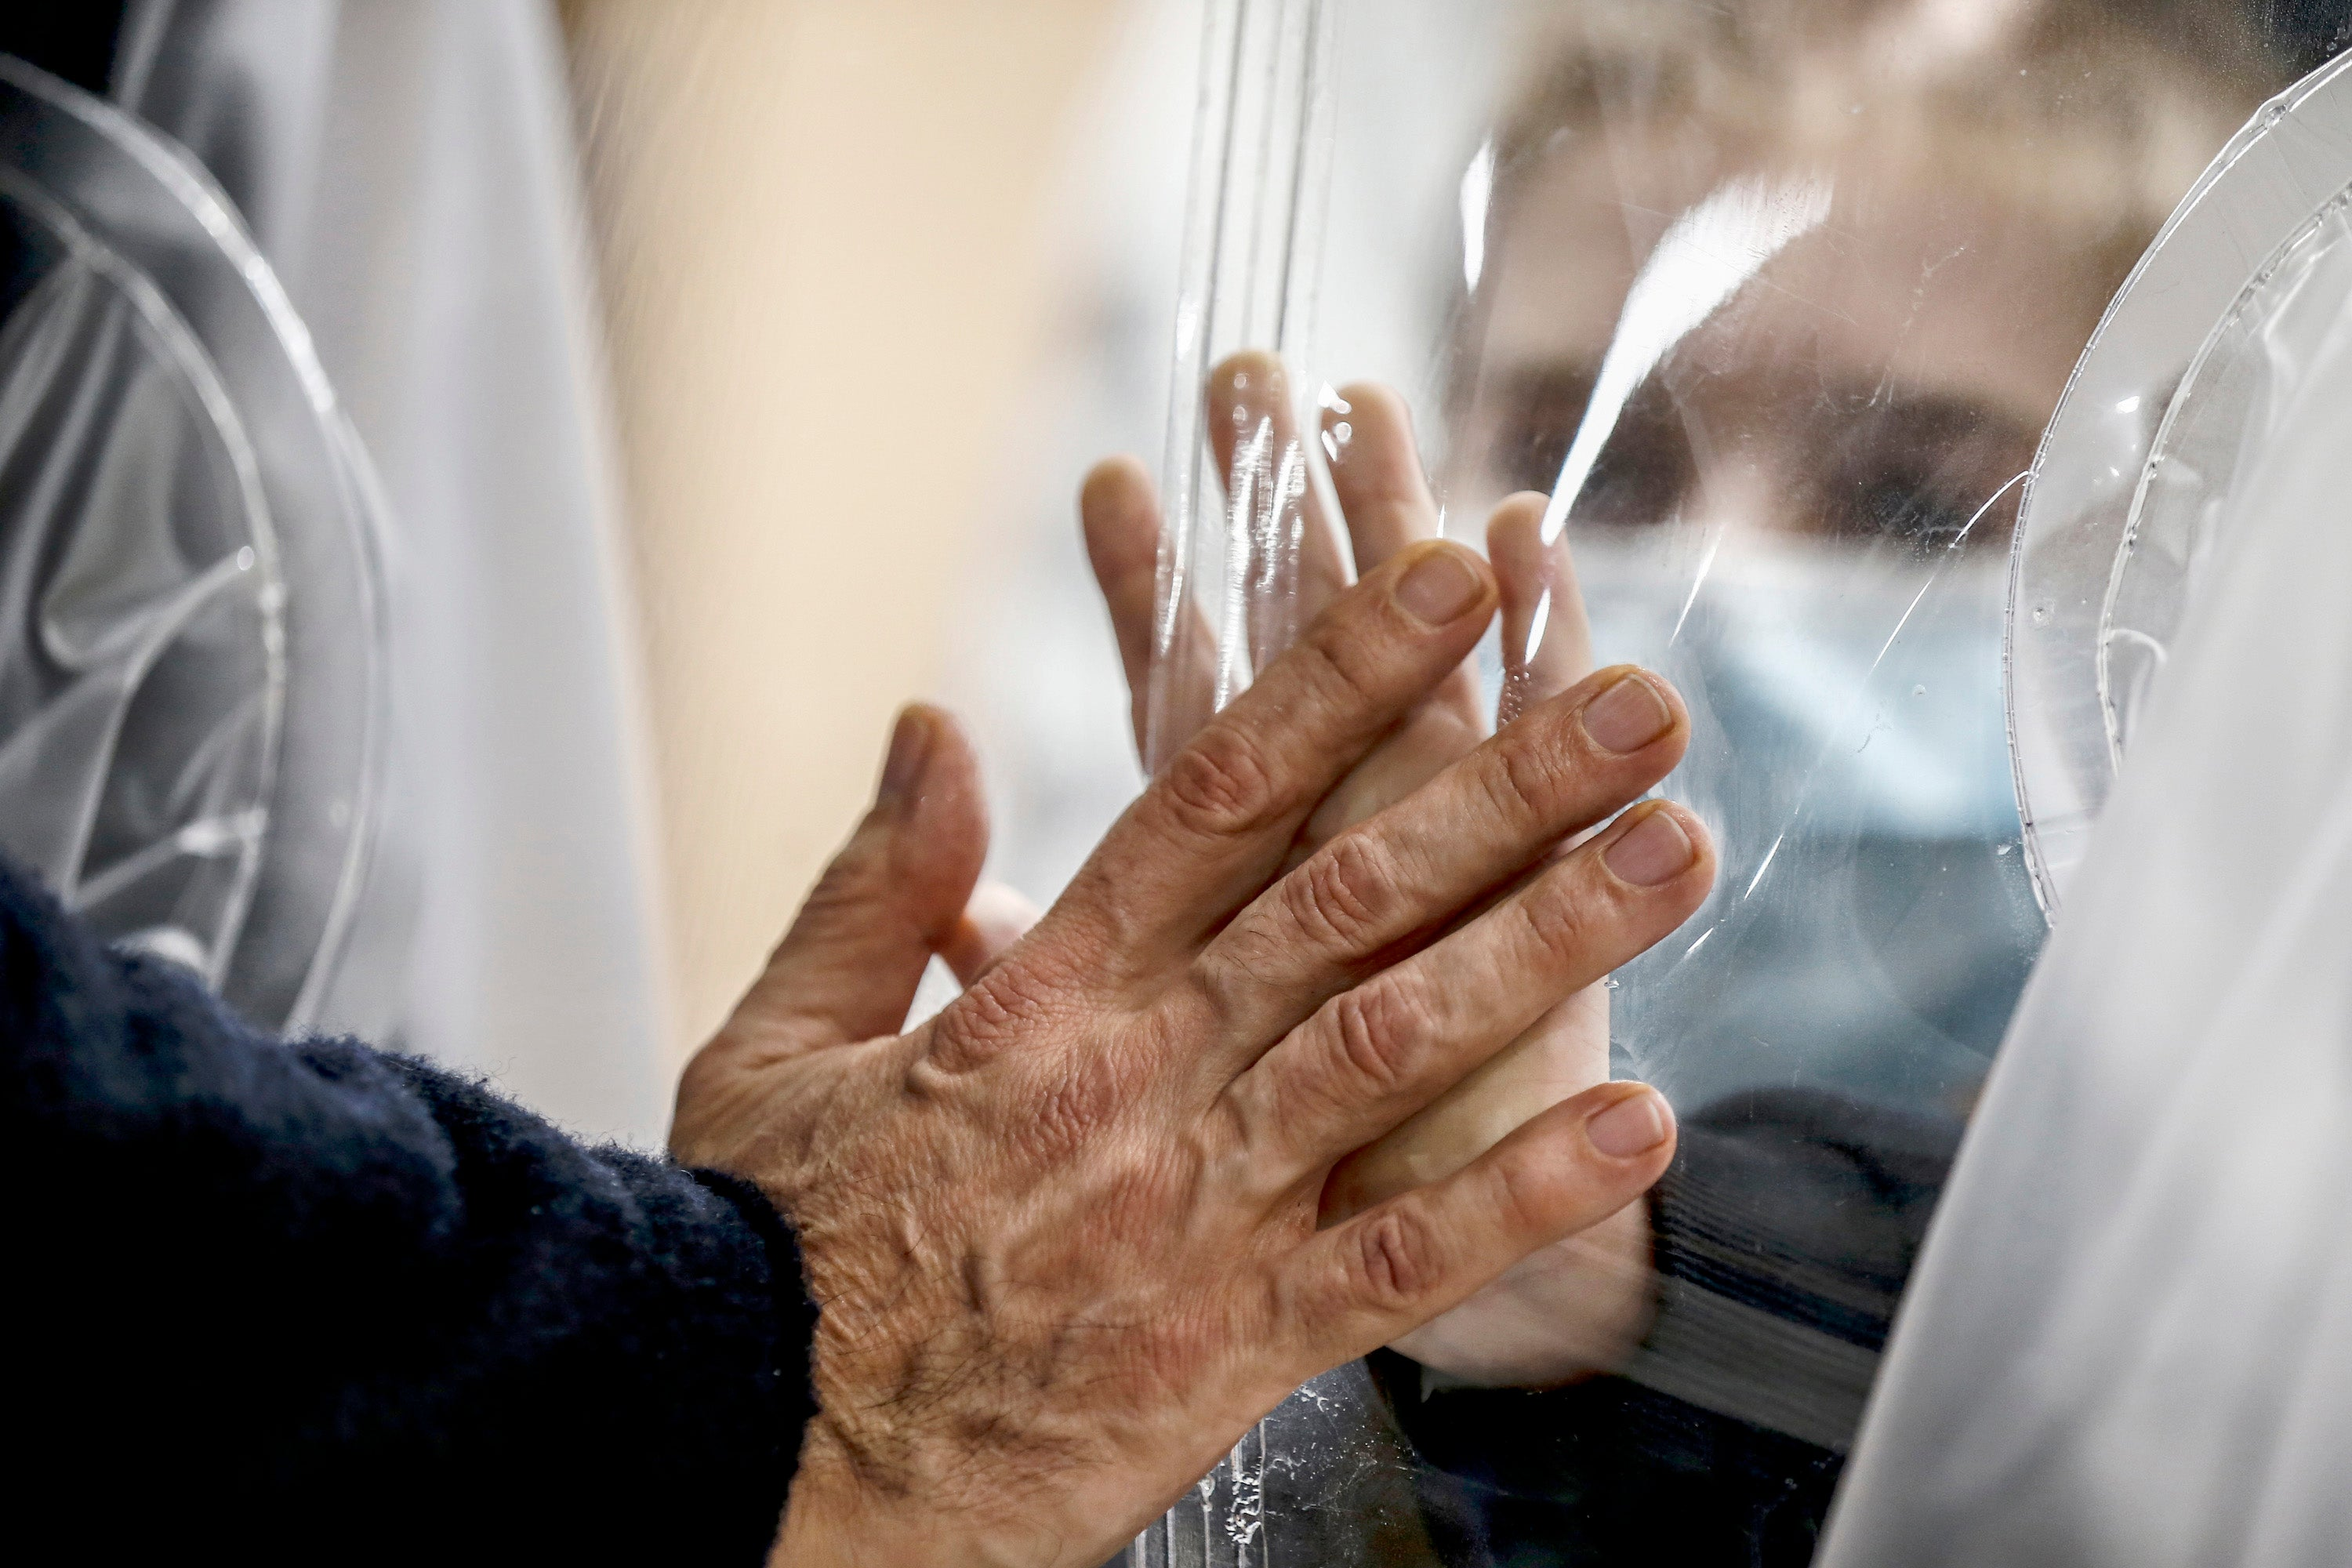 Relatives touch each other's hand through a plastic film screen and a glass to avoid contracting Covid-19 at the San Raffaele center in Rome, Italy, Dec. 22, 2020